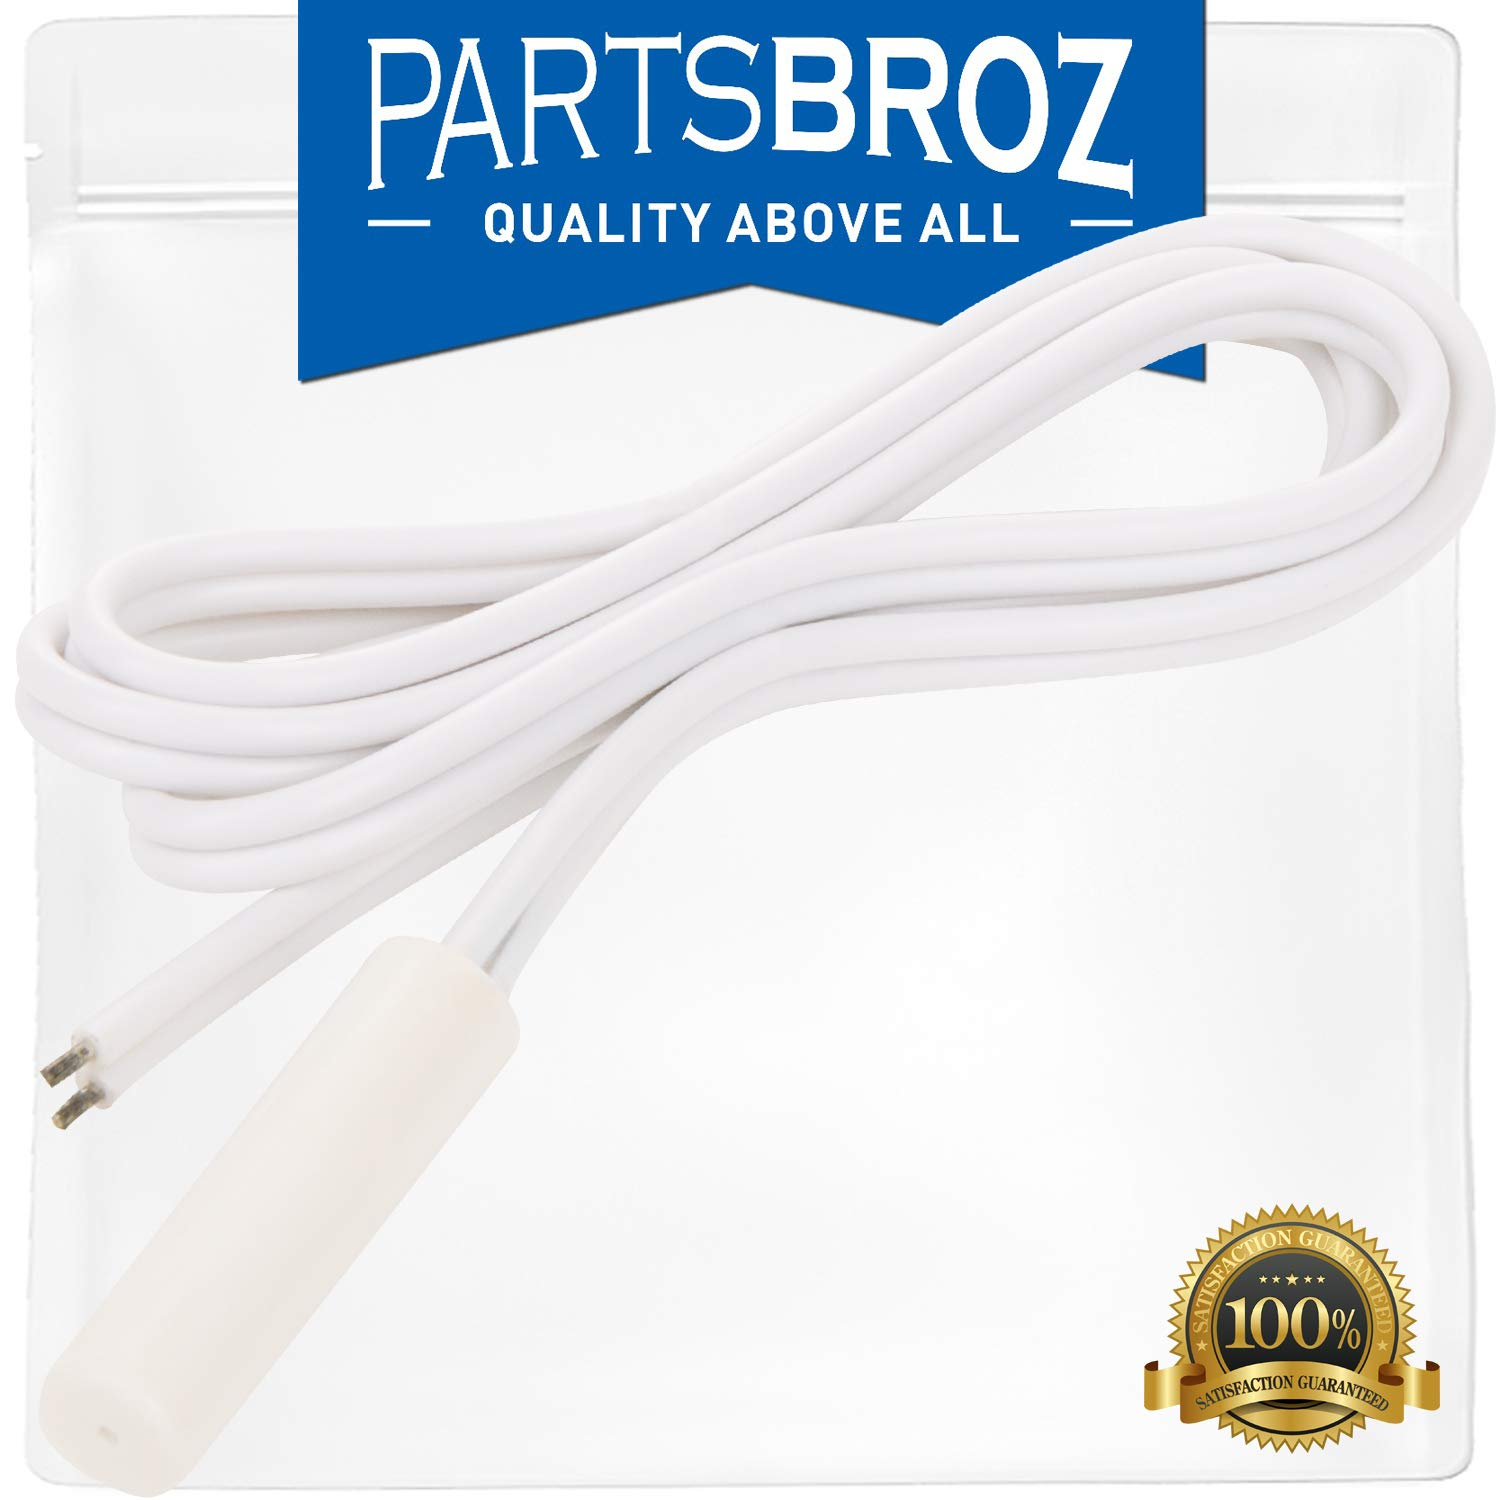 WR55X10025 Temperature Sensor for GE Refrigerators by PartsBroz - Replaces Part Numbers AP3185407, 914093, AH304103, EA304103, PS304103, WR50X10027, WR50X10034, WR50X10055, WR50X10067, WR55X10025B